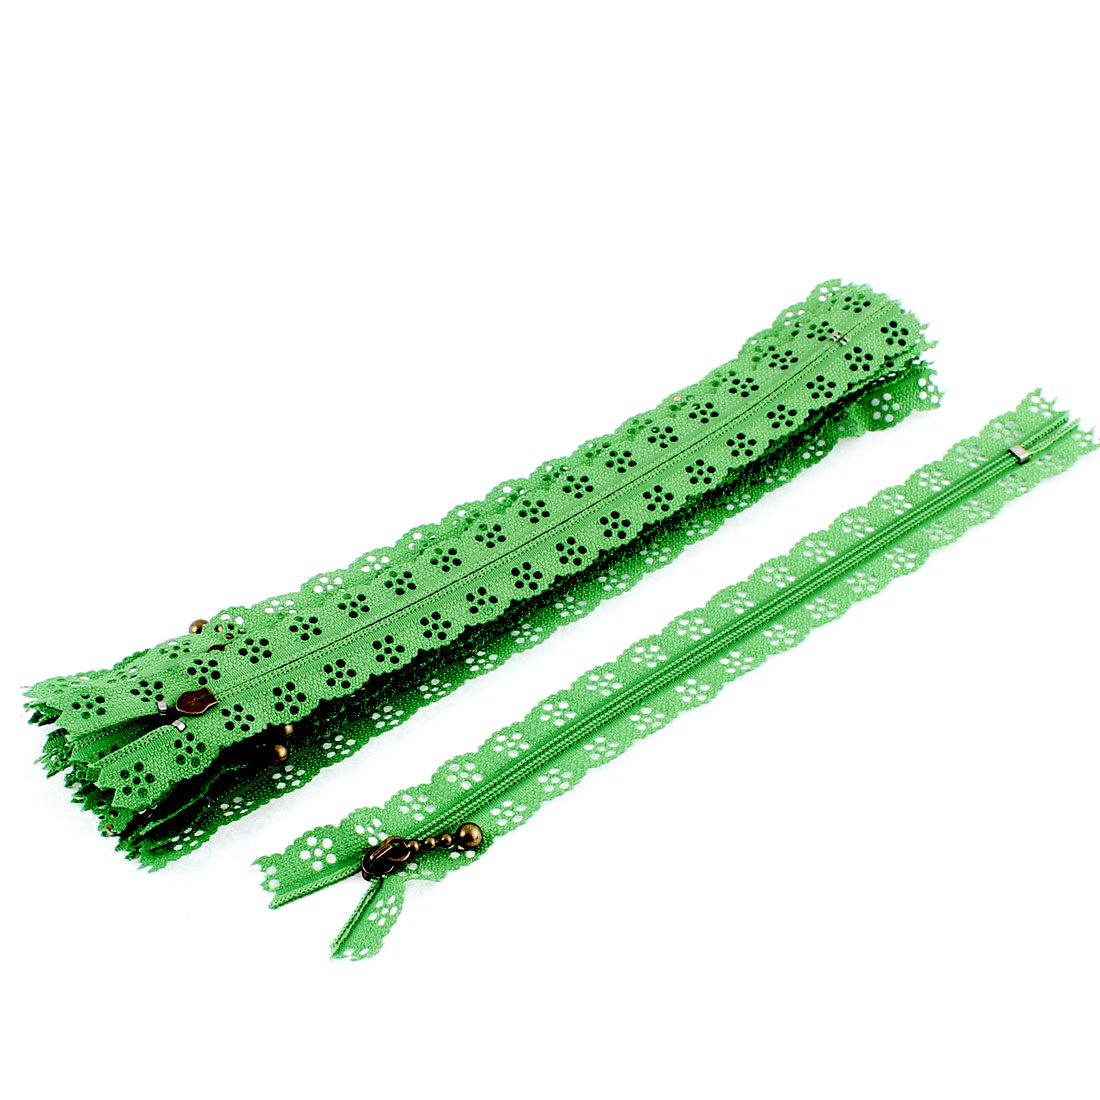 10 Pcs Green Nylon Lace Edged Closed End Sewing Zipper Zip